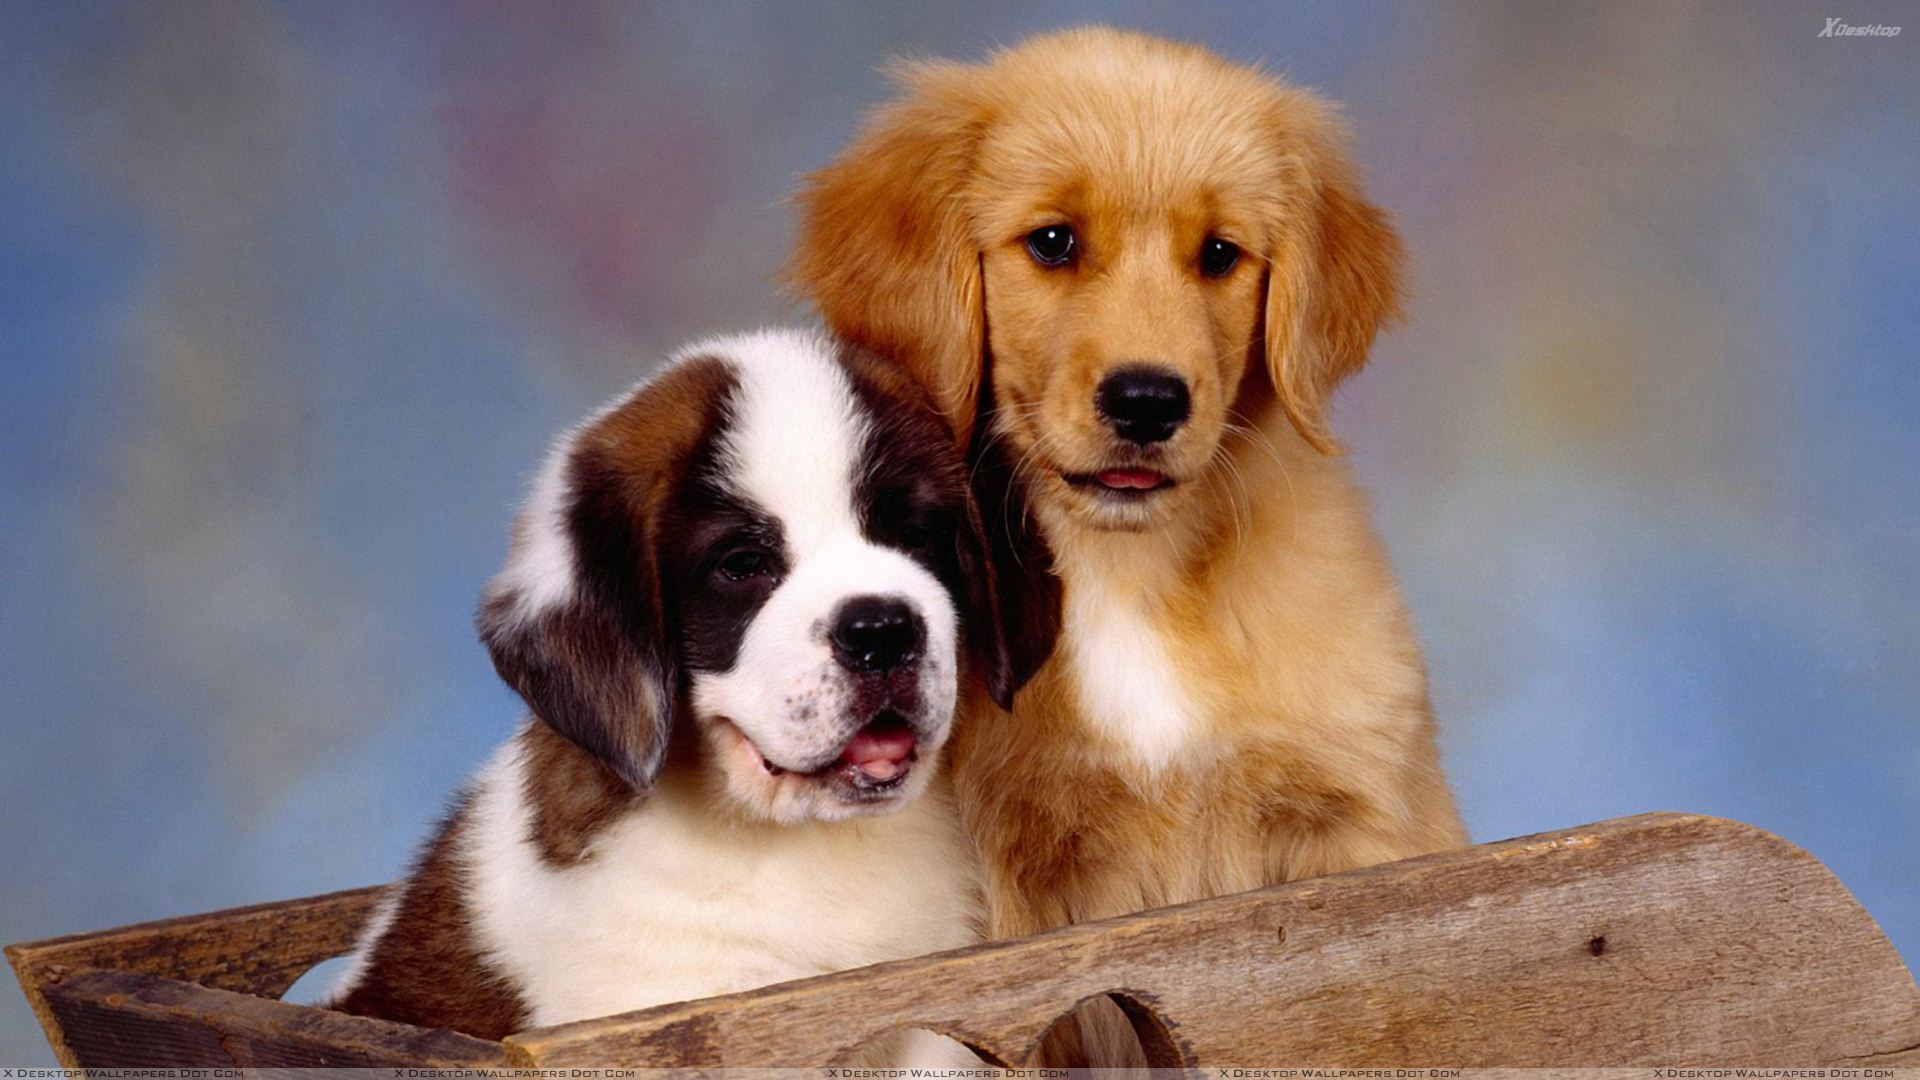 cute puppies hd wallpaper download